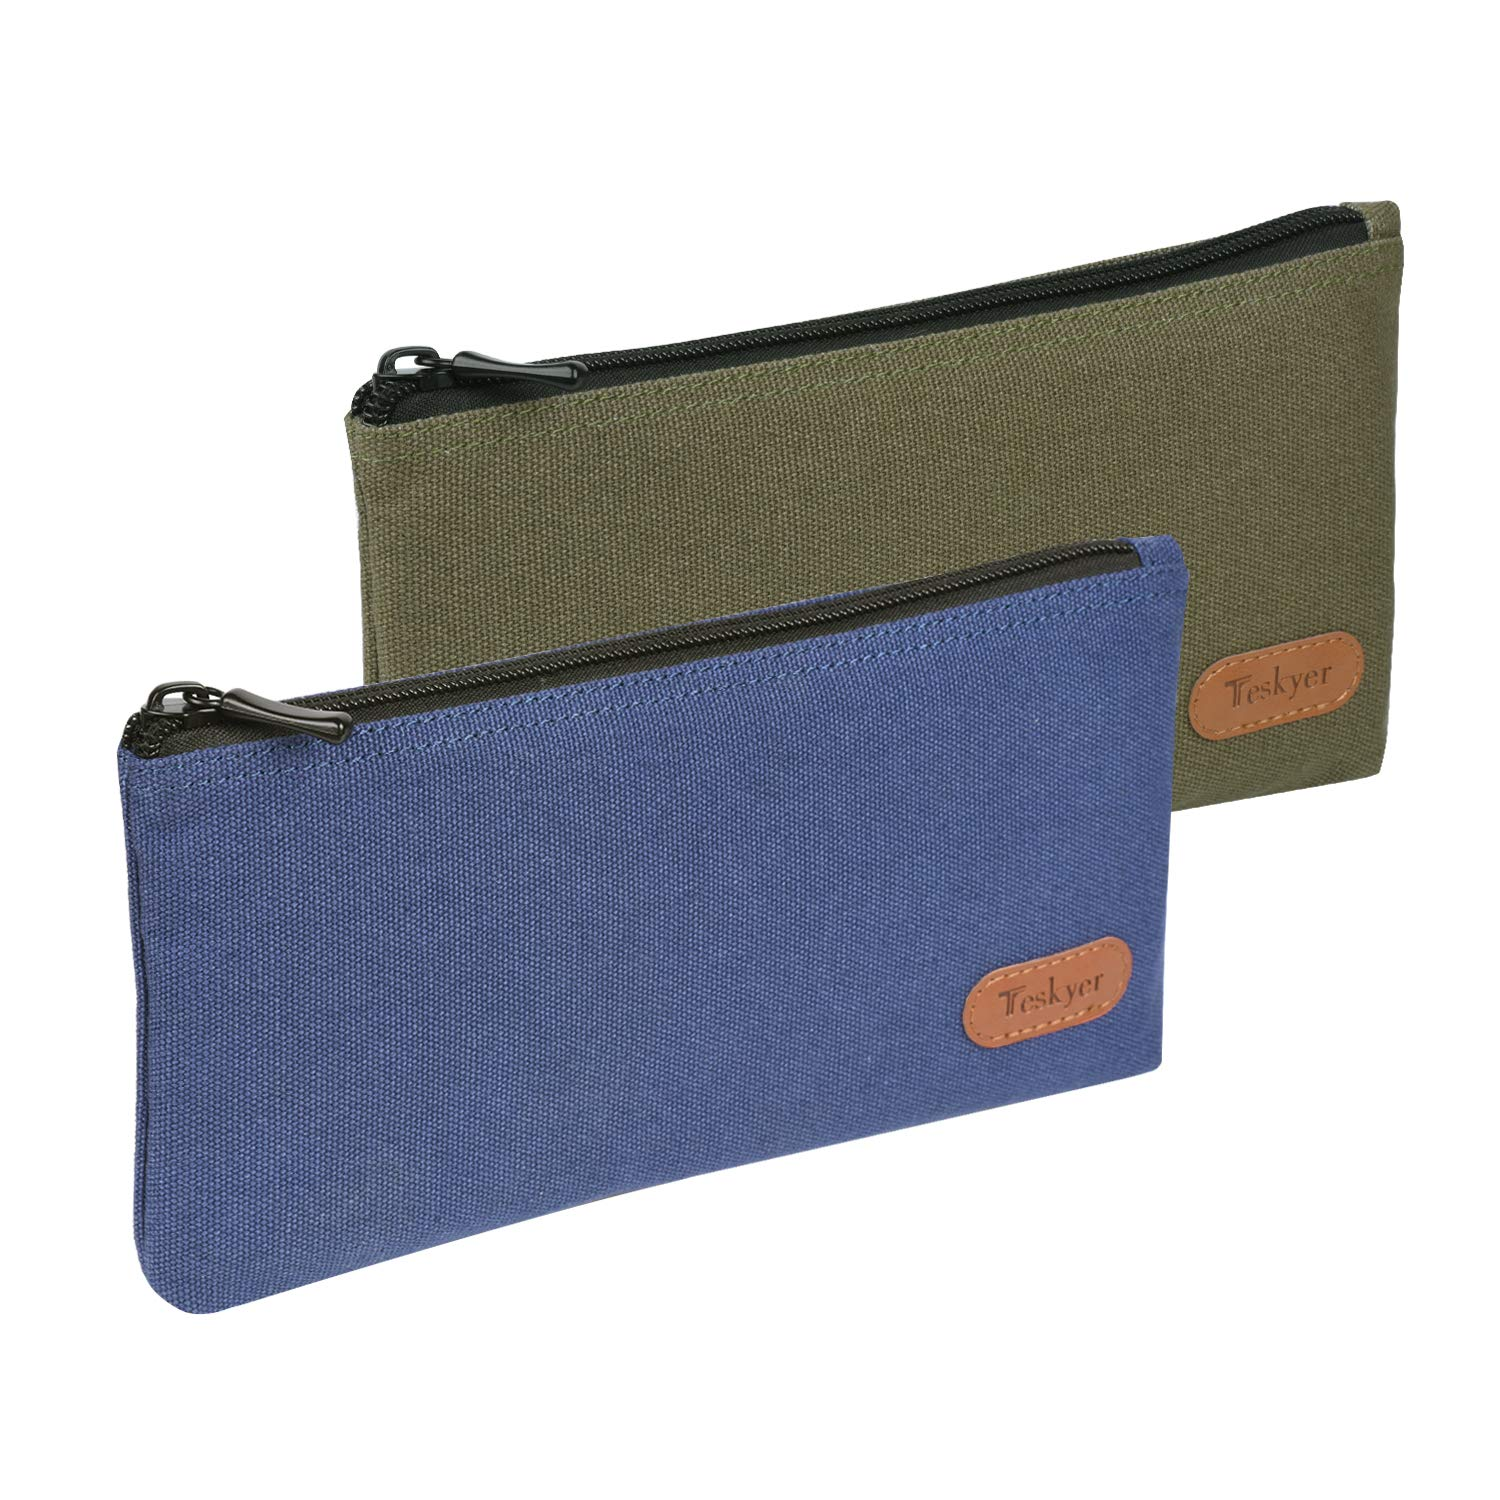 Teskyer Pencil Case/Pen case/Pencil Pouch for Students, Zipper Stationery Bag for Pens and Pencils, Women's Small Makeup Pouch, Utility Zipper Cash Coin Bag-2 Pack,Blue and Green